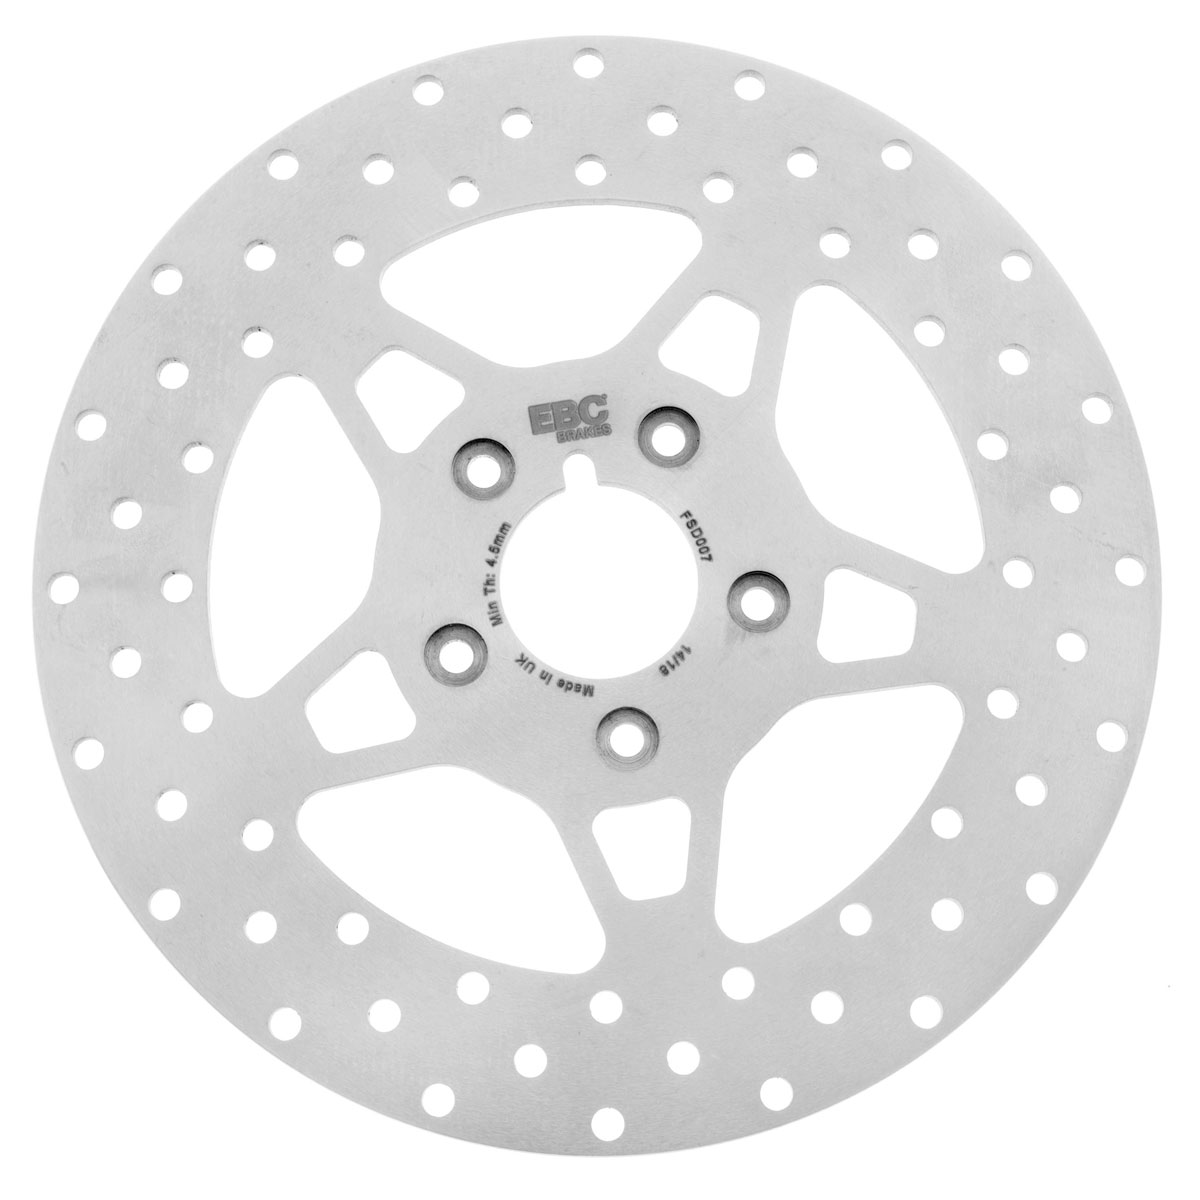 EBC 11.5″ Solid Wide Band Stainless Front Brake Rotor